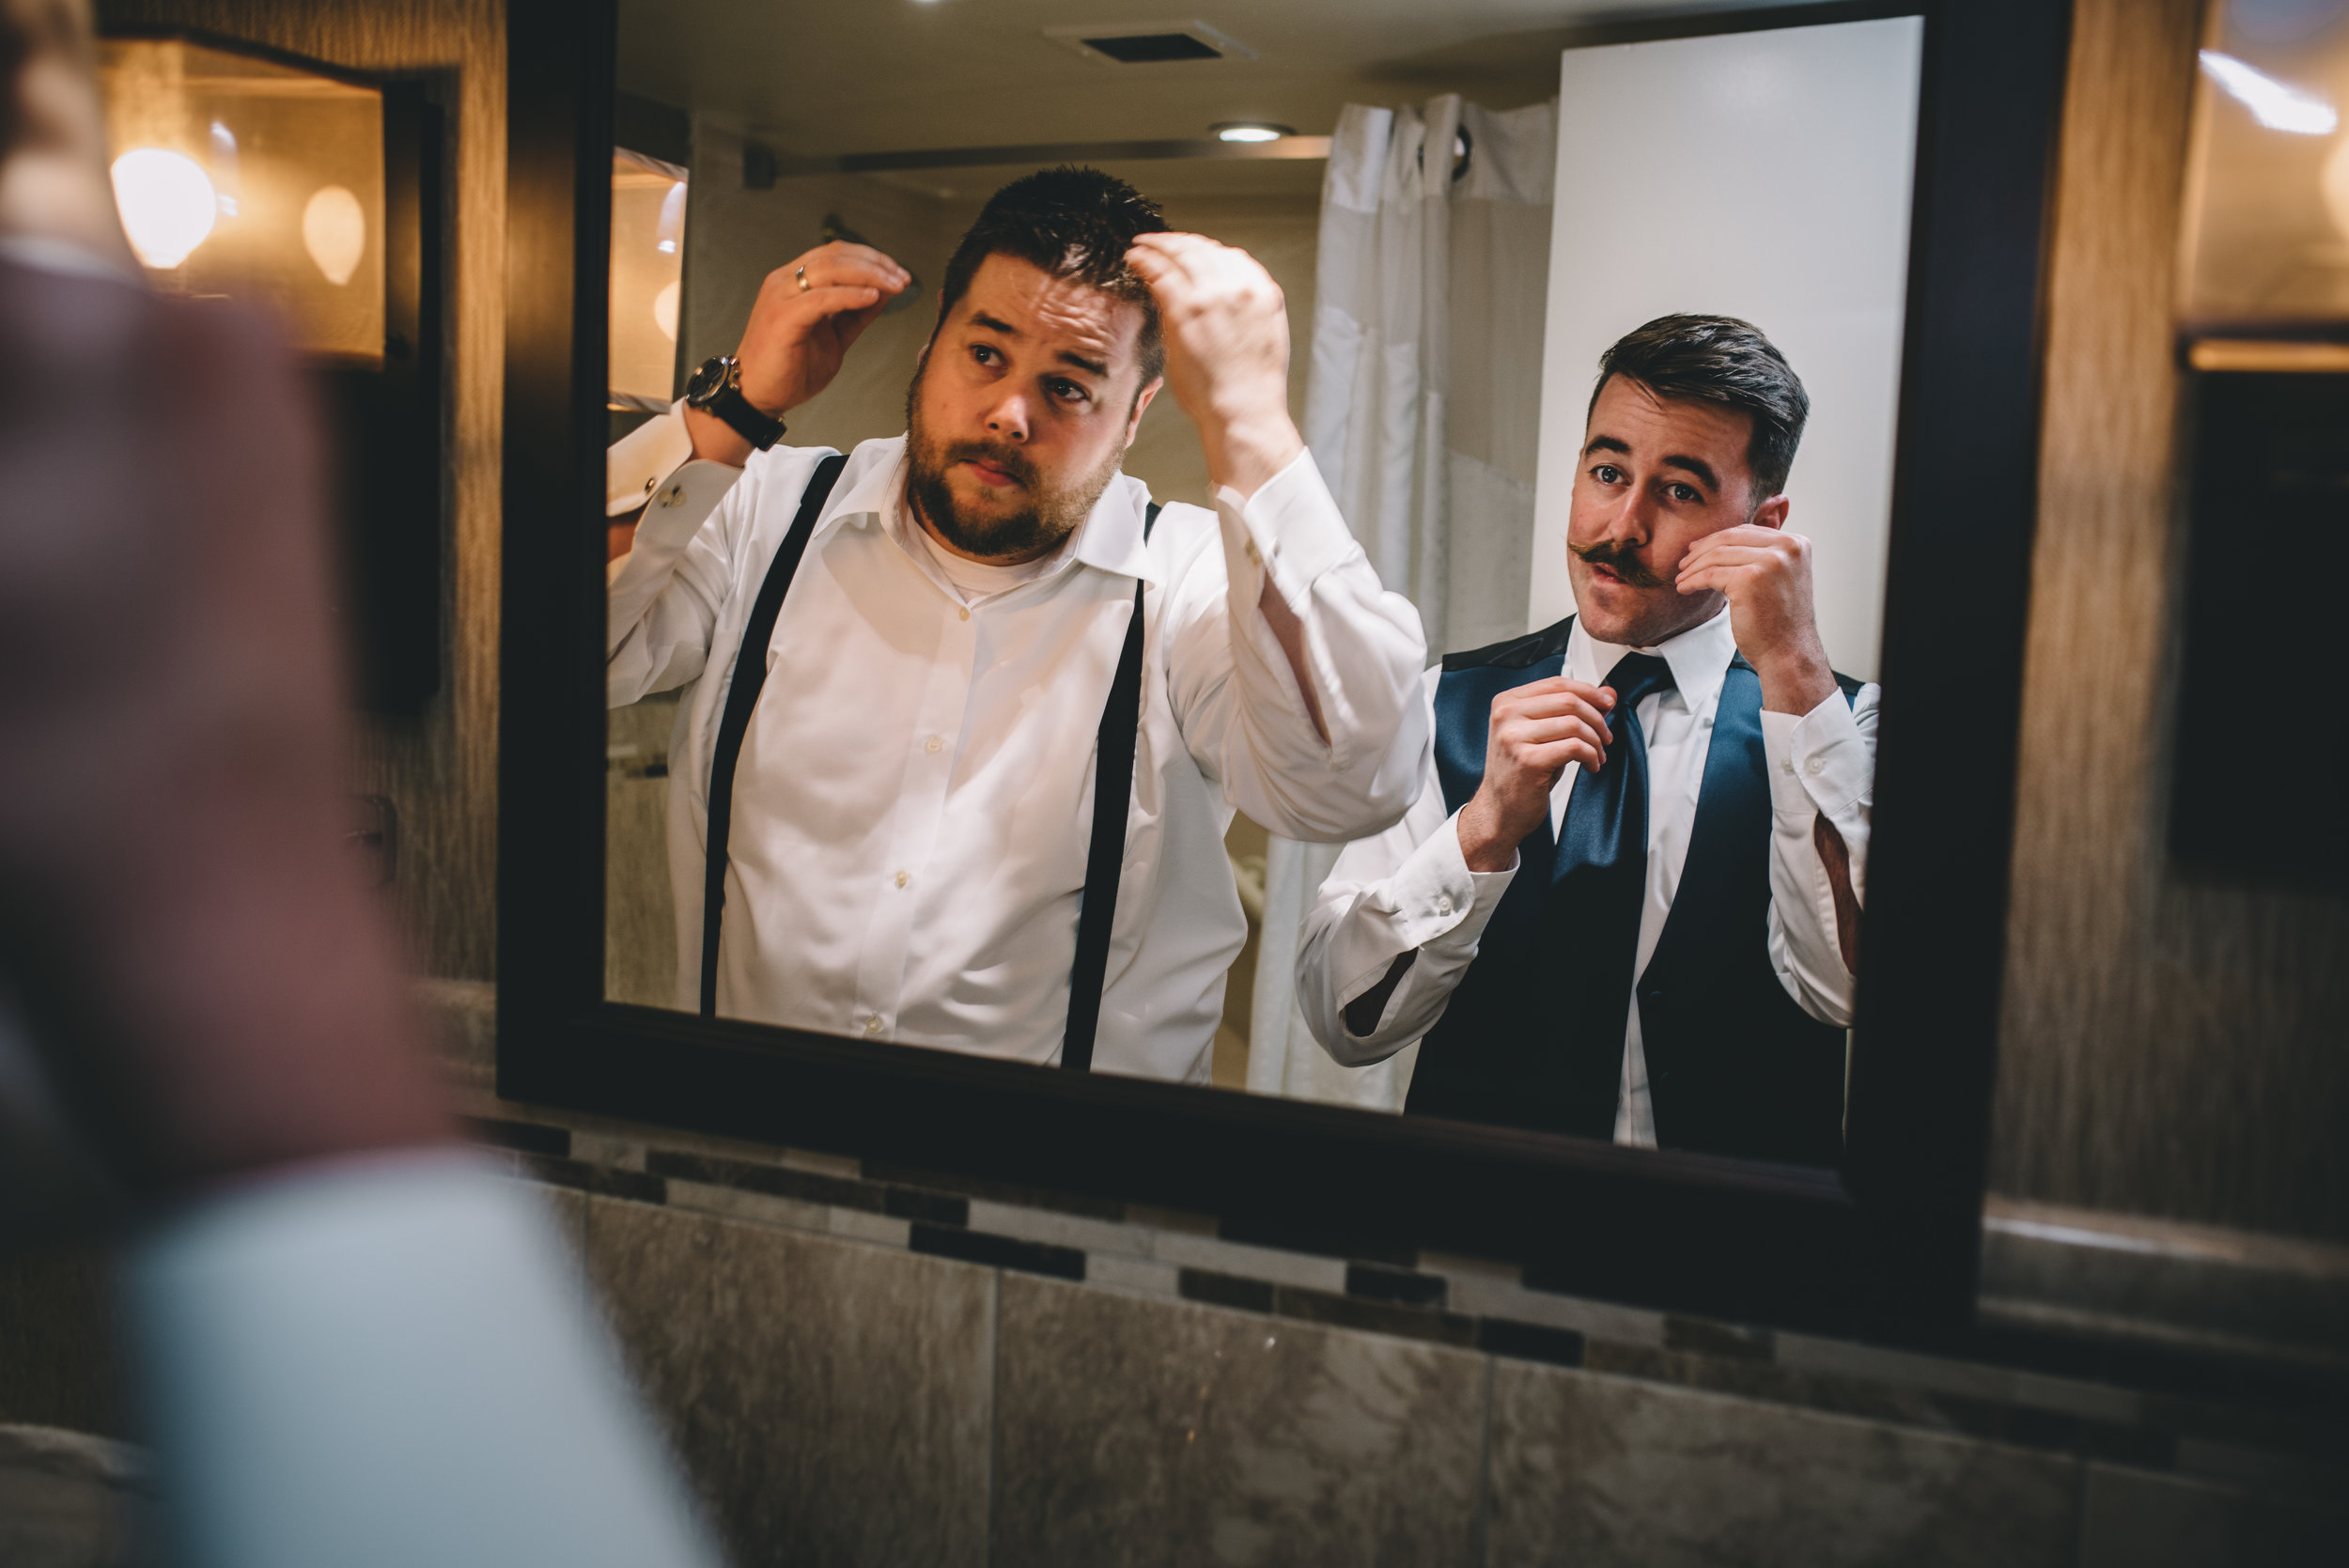 Groom Getting Ready 5 Mocha Tree Studios Ottawa Wedding and Engagement Photographer and Videographer Dark Moody Intimate Authentic Modern Romantic Cinematic Best Candid ALEX + BRIAN: THE MOUNT, PETERBOROUGH, ON